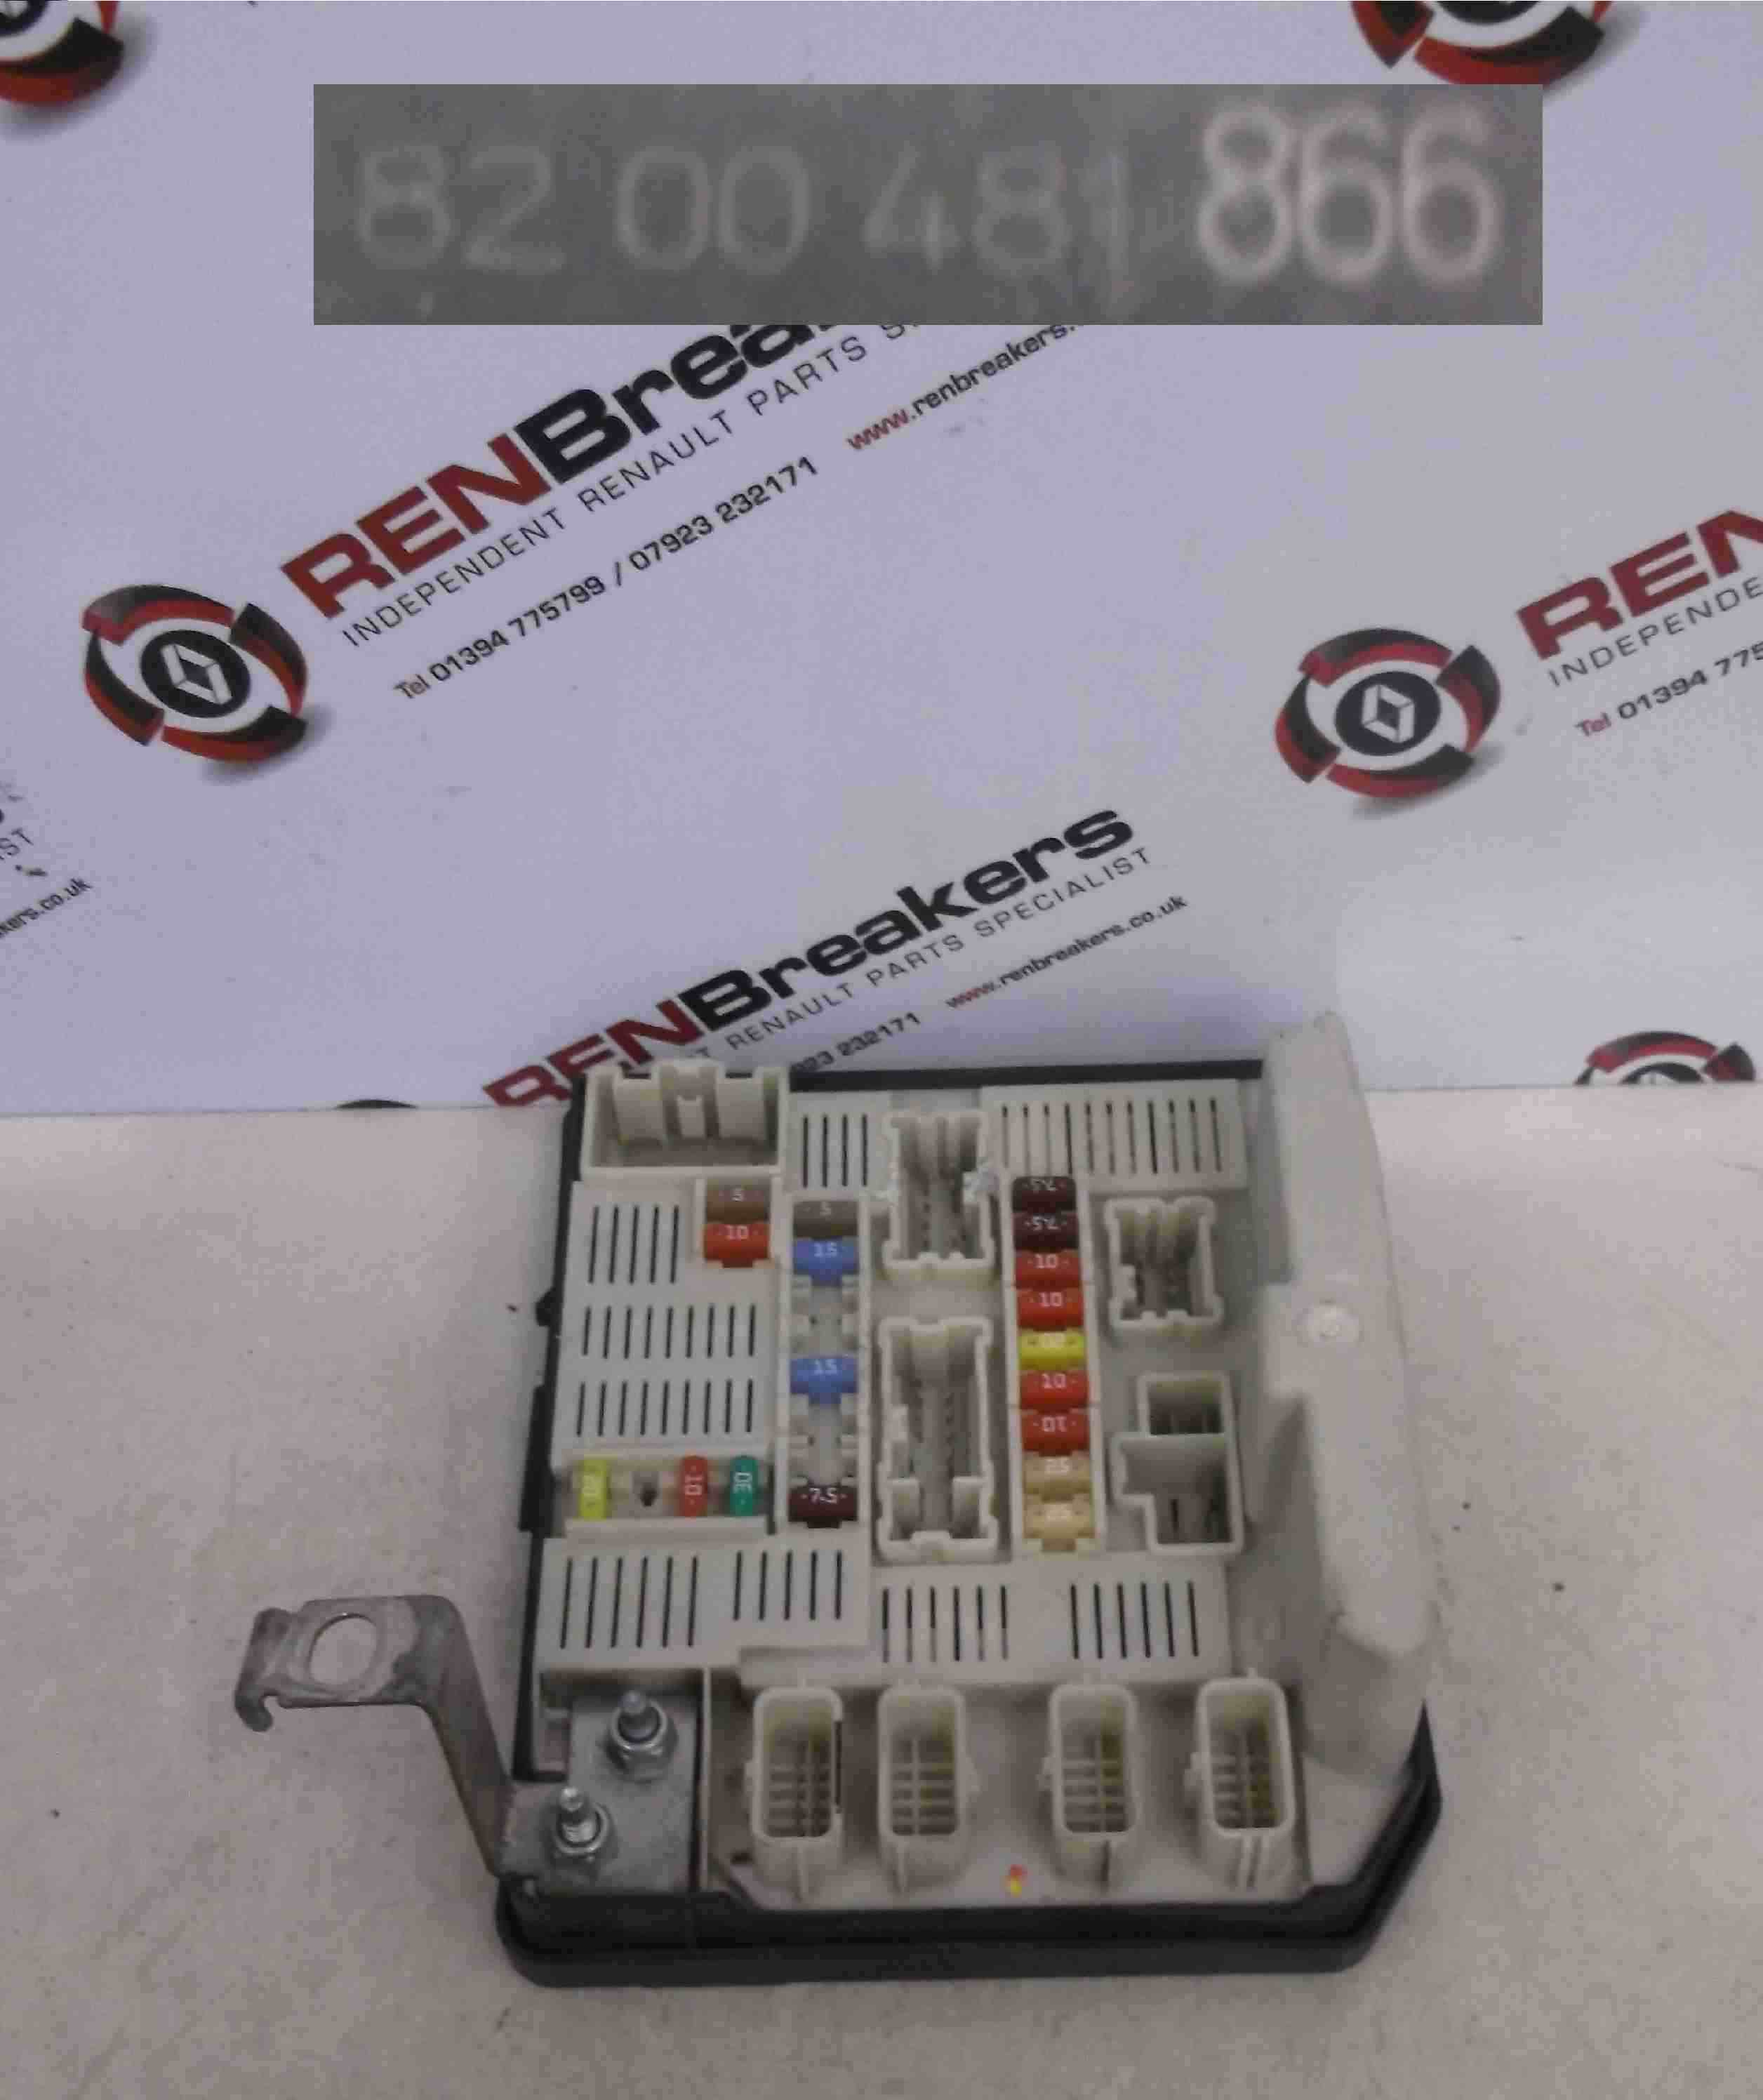 Renault Megane 2005 Engine Bay Fuse Box : Renault megane scenic  engine bay upc unit fuse